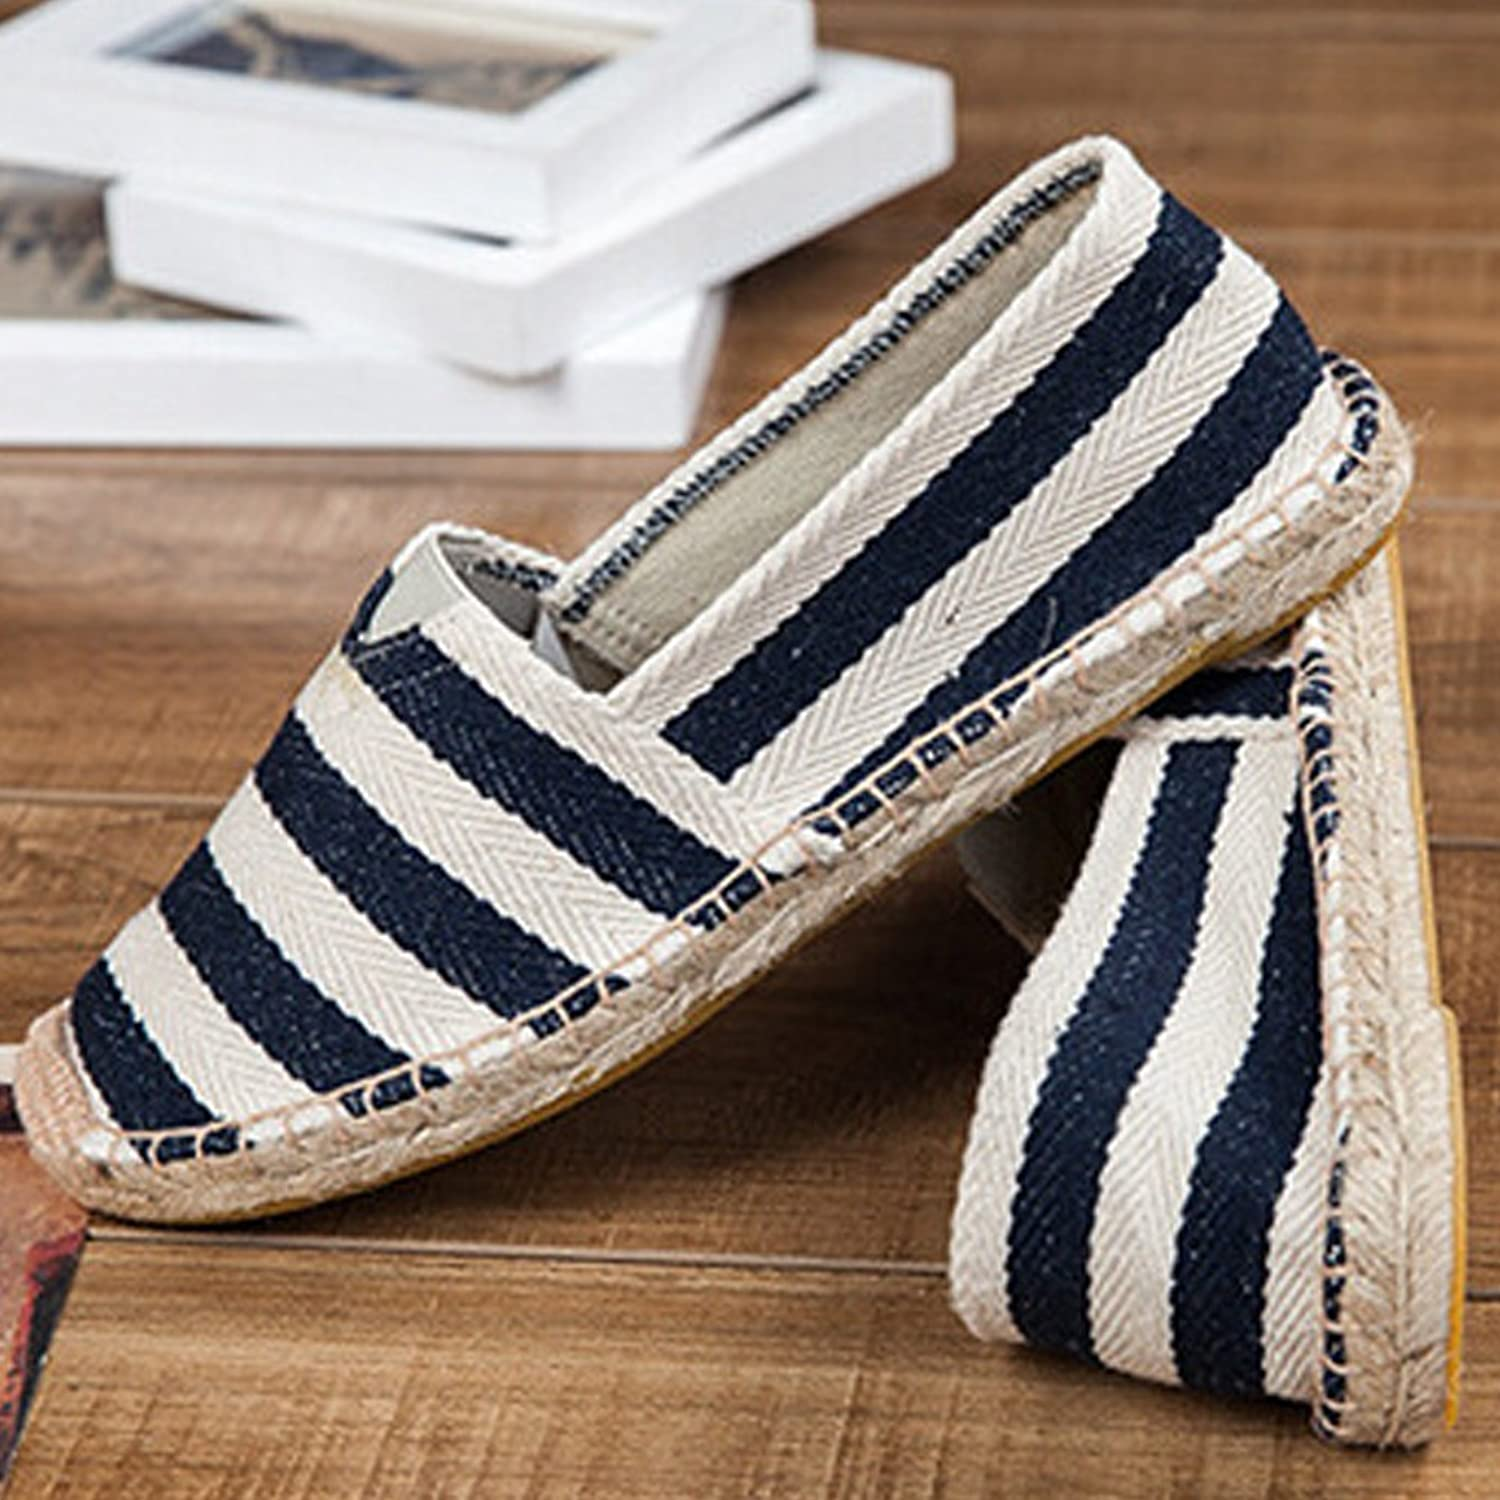 Vogstyle Unisex Breathable Canvas Slip On Espadrille Shoes Sneakers Slip On  Flats: Amazon.co.uk: Shoes & Bags